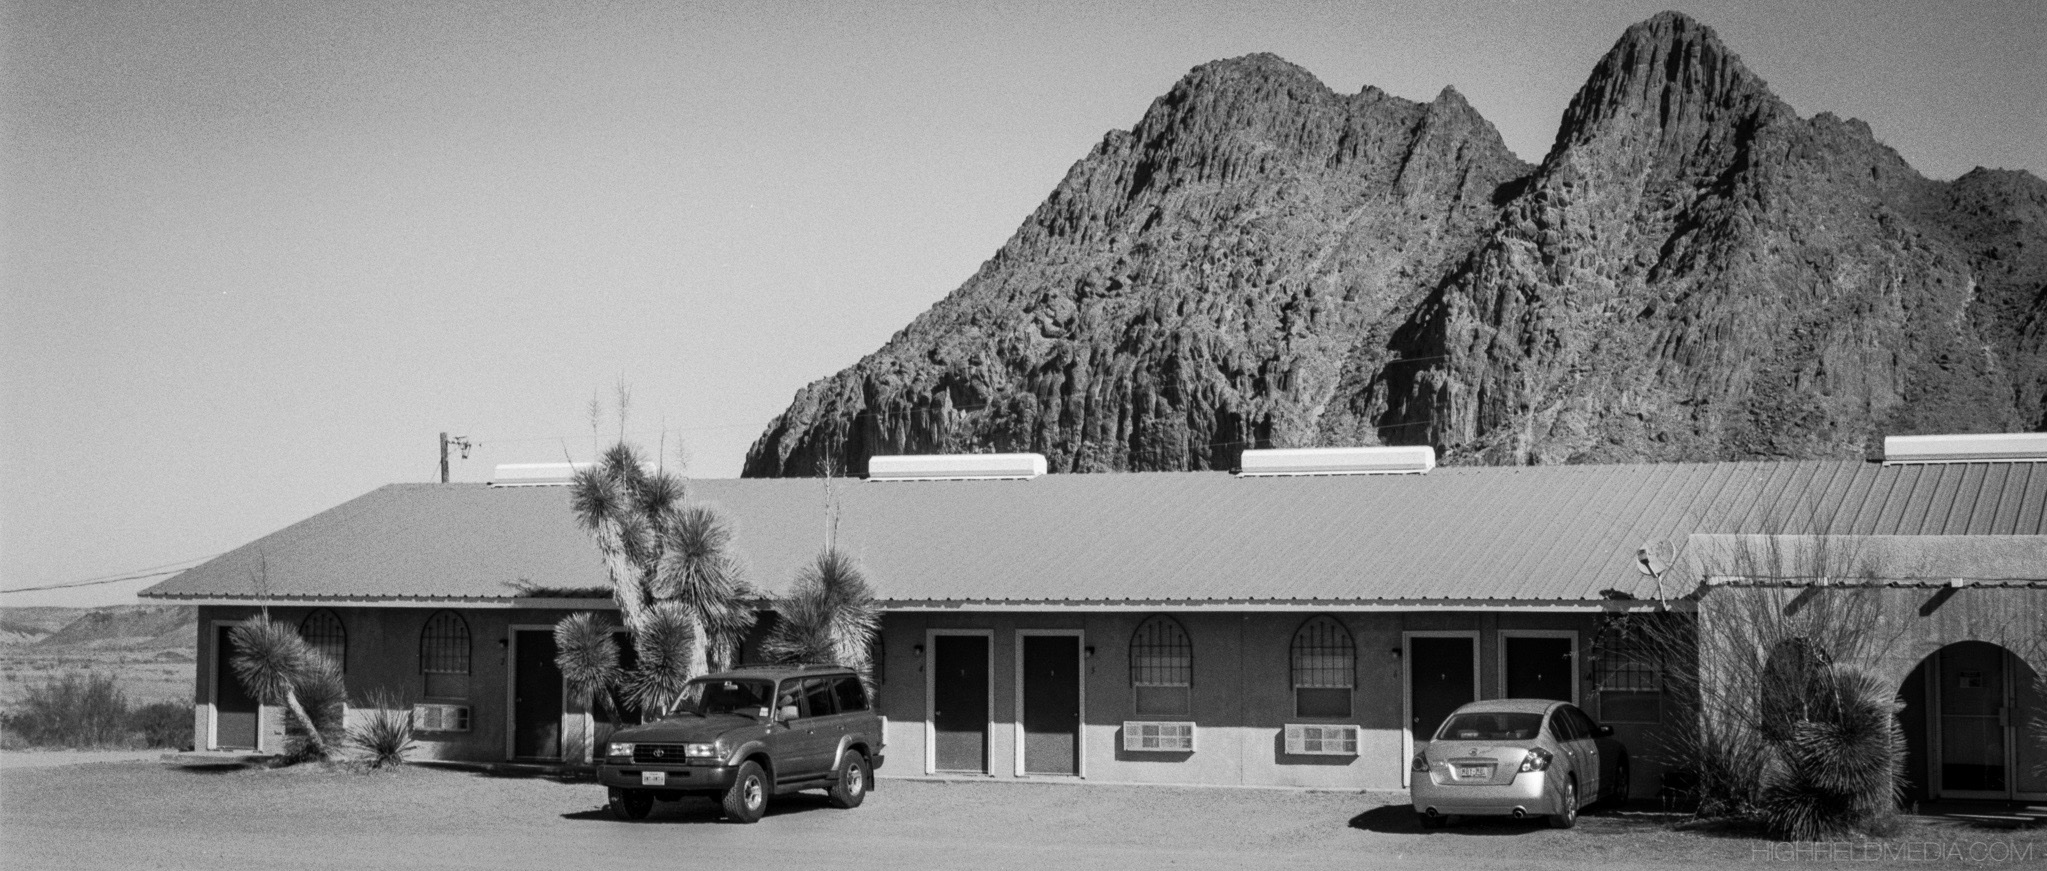 The Big Bend Mission Lodge in Study Butte-Terlingua, TX. Although the rooms are spartan, they're clean and affordable.